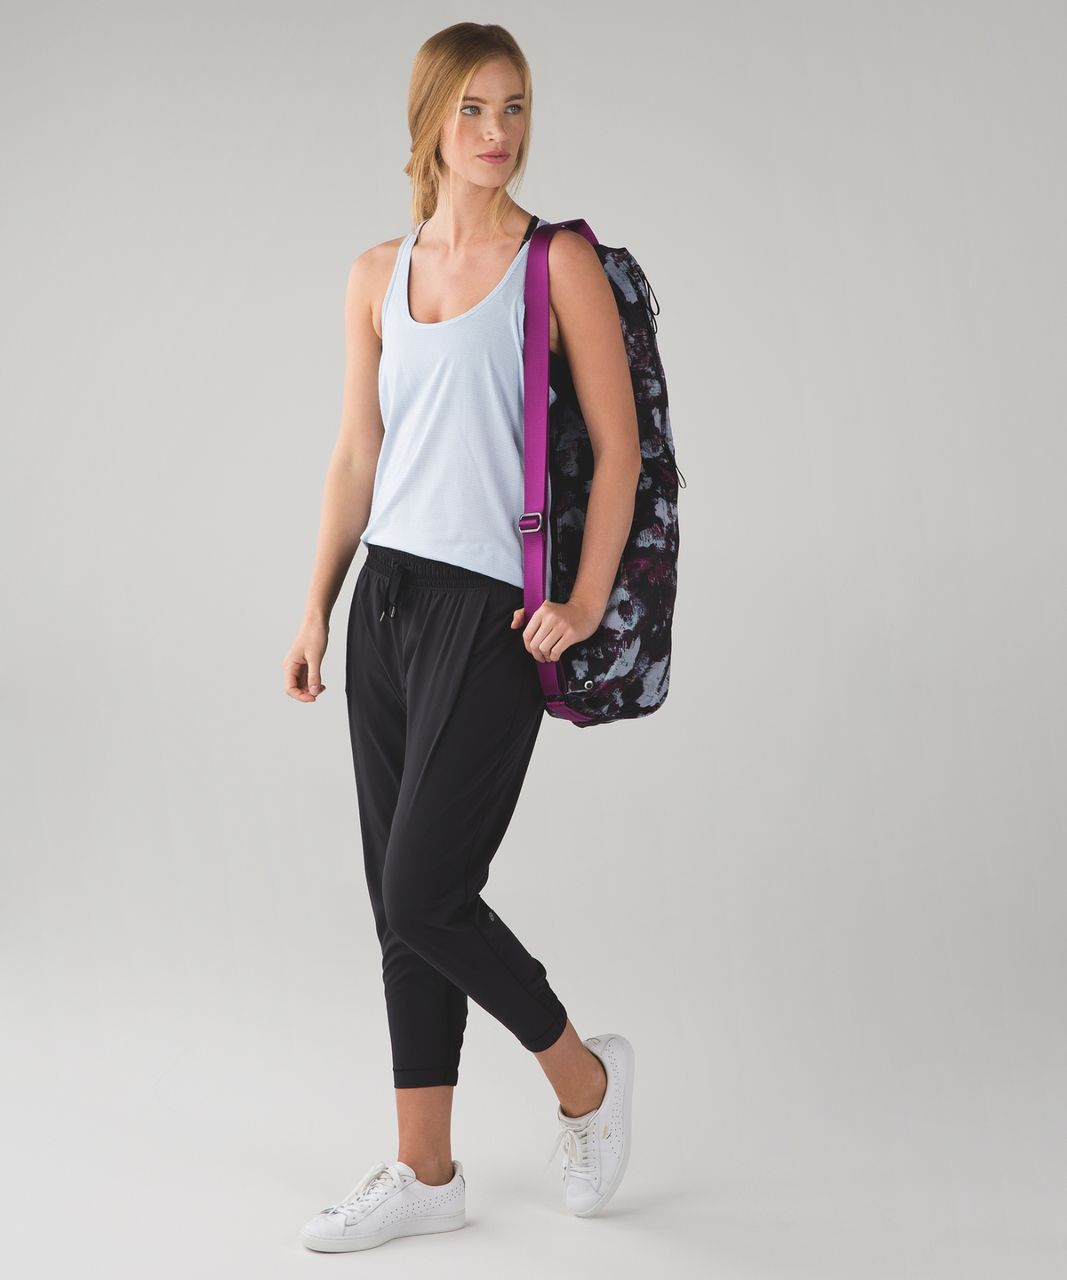 Lululemon The Yoga Bag *14L - Kara Blossom Multi